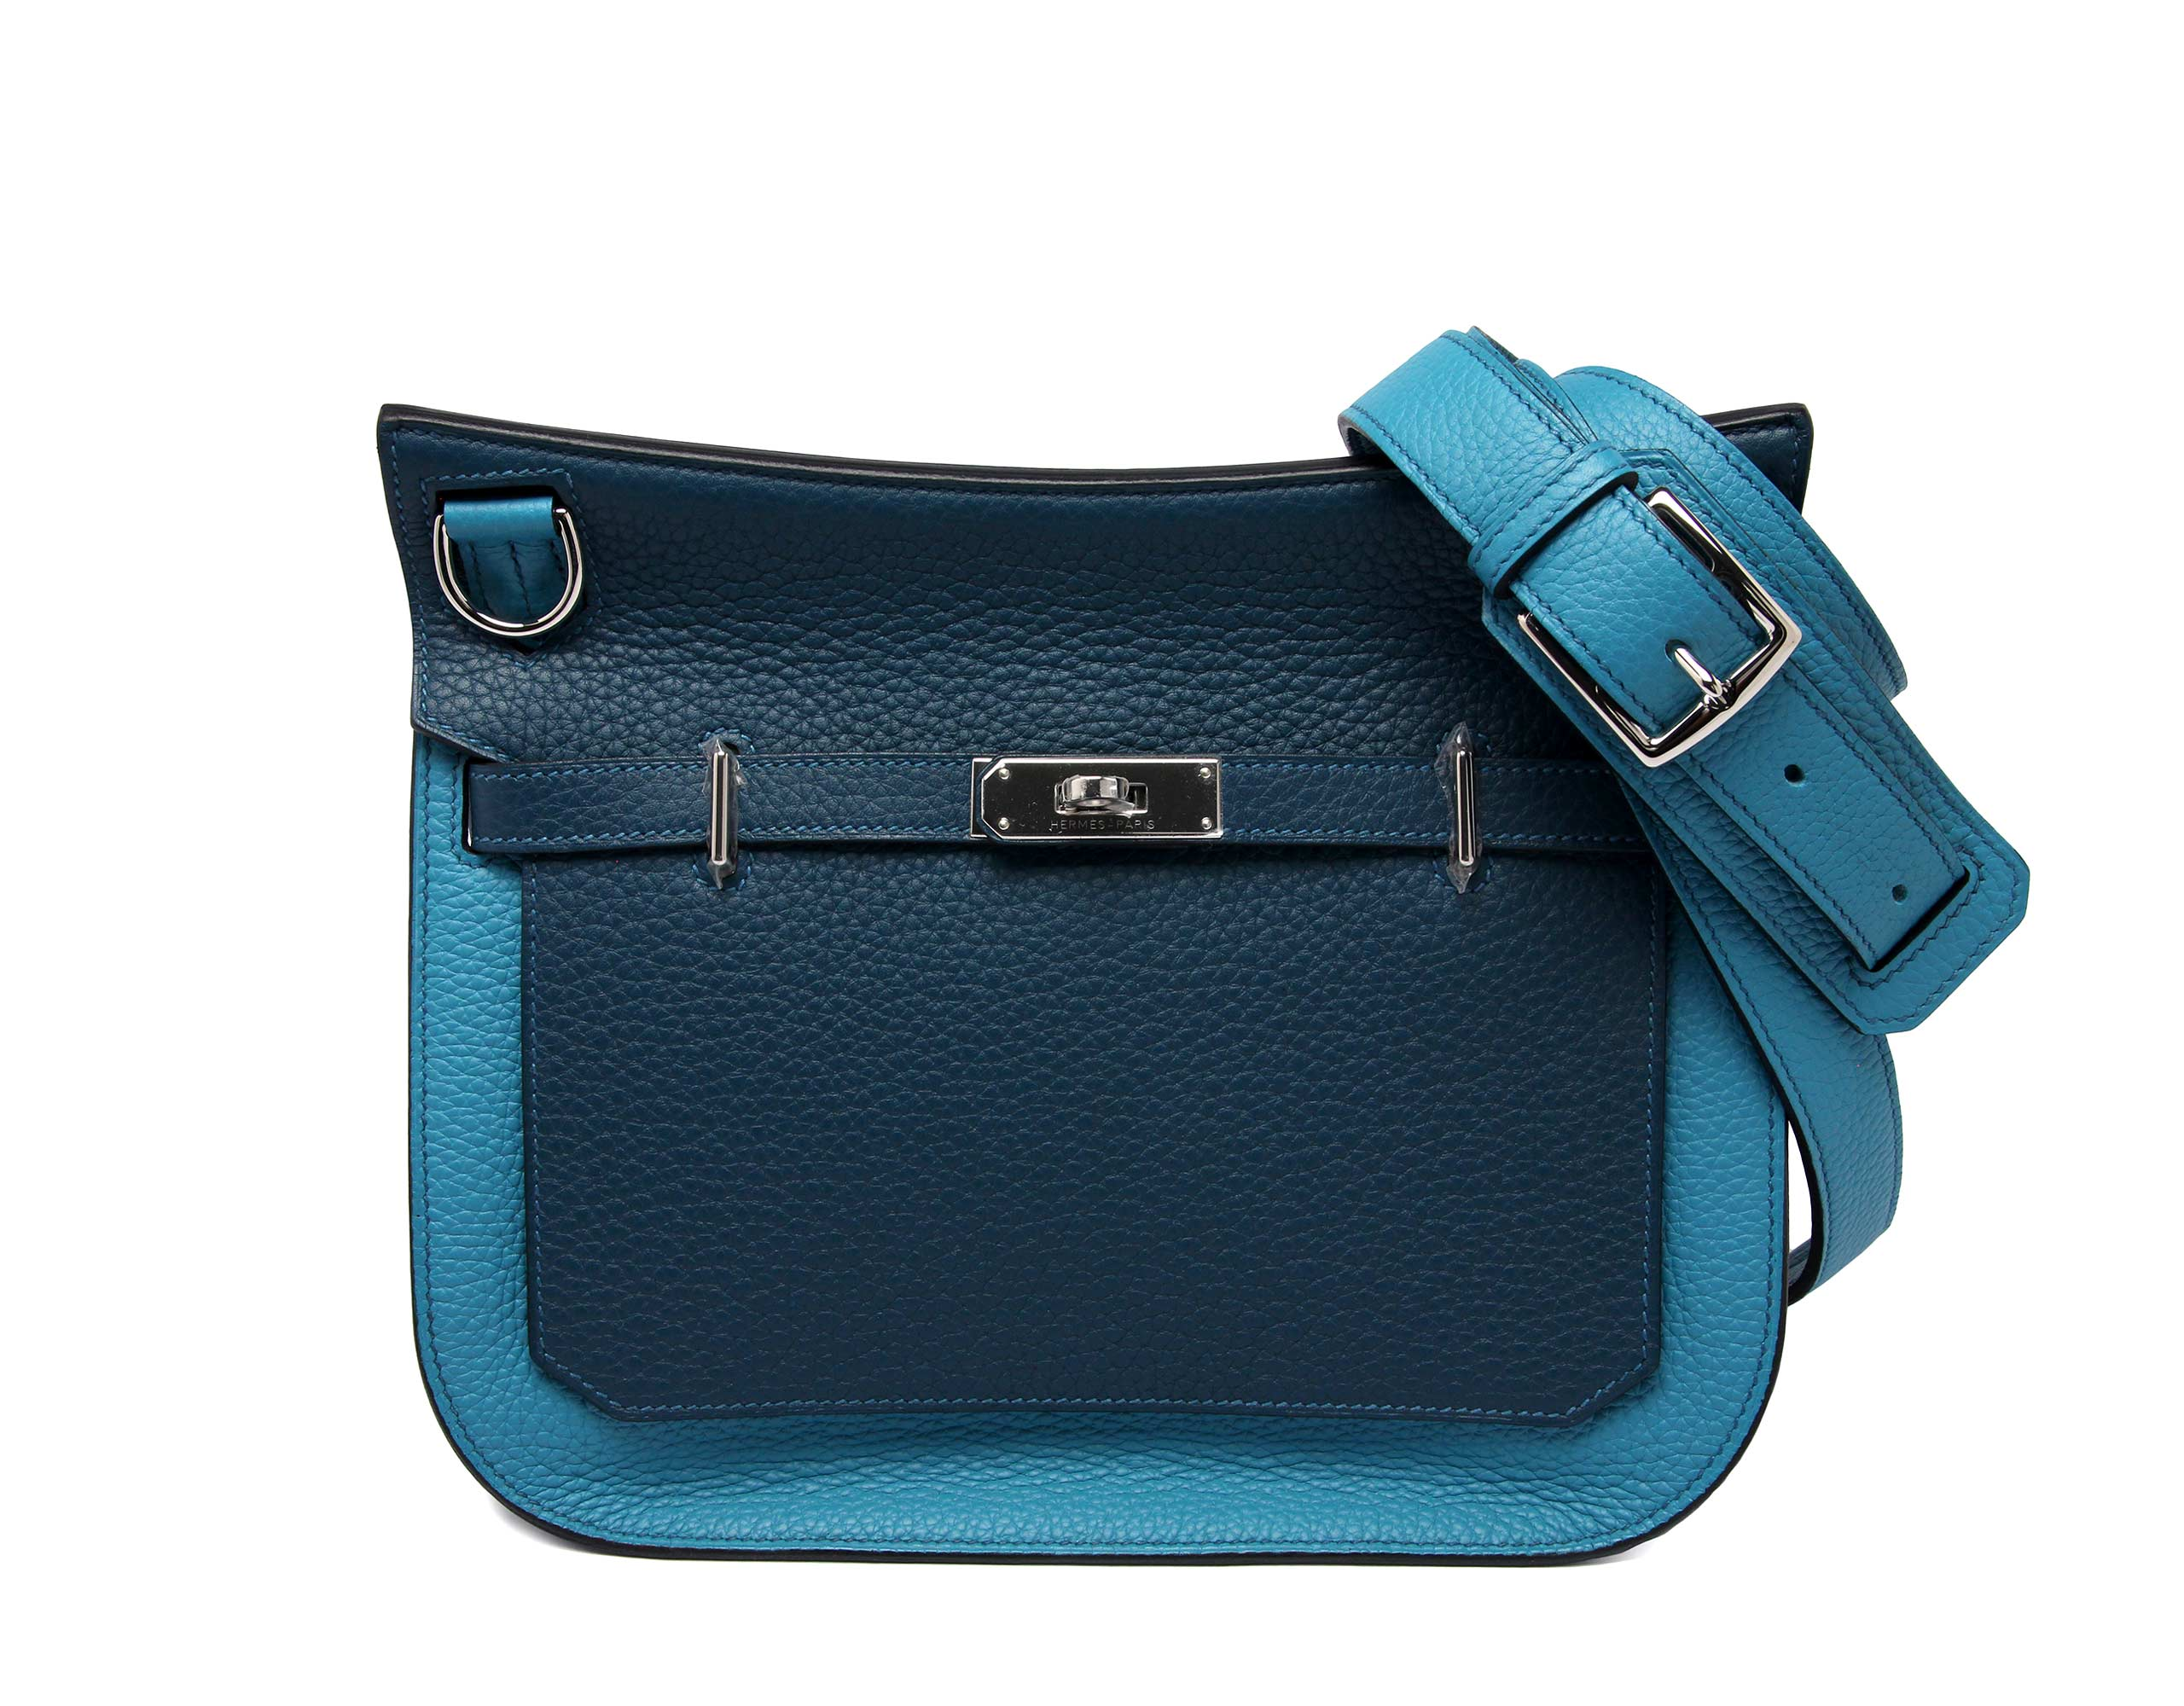 ee568adfba31 ... netherlands hermes outlet san diego 2014hermes bag collection 2010  download hermes jypsiere blue colvert turquoise clemence